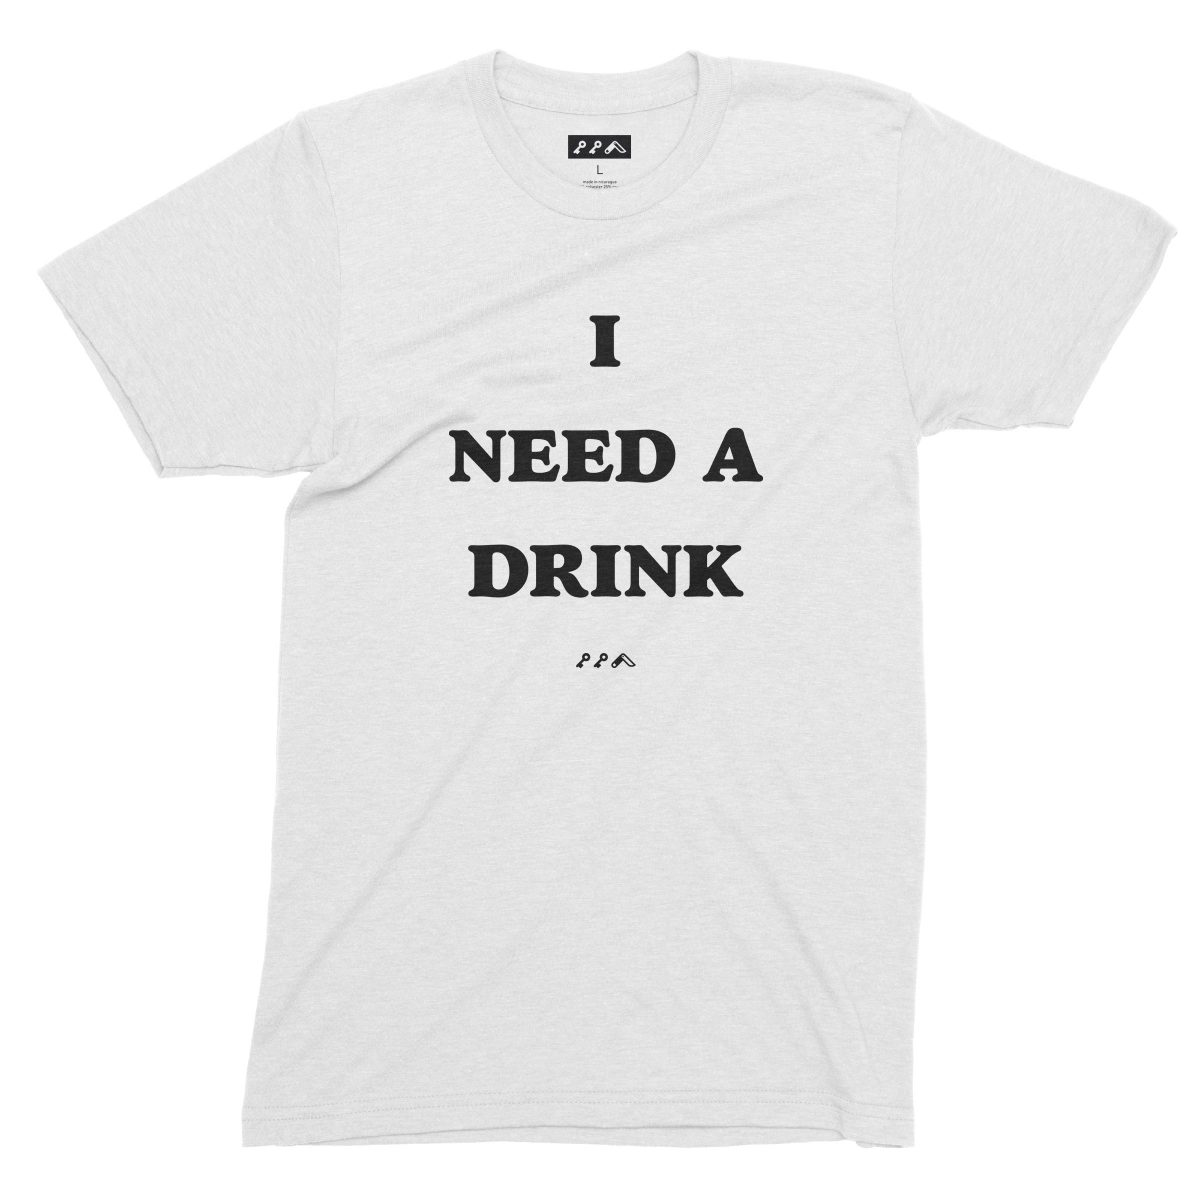 I NEED A DRINK funny sunday funday t-shirts in white